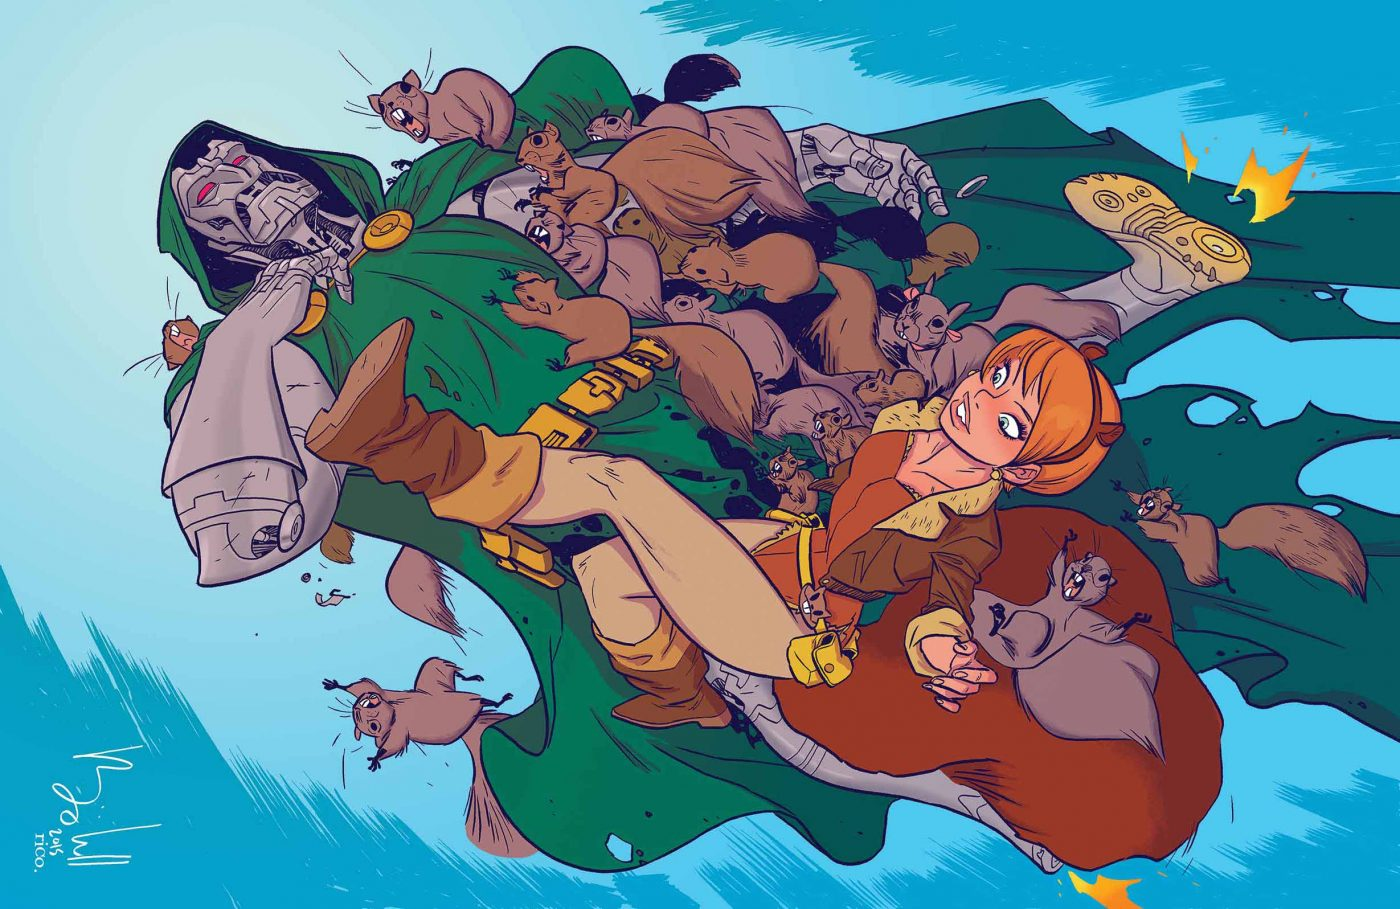 Marvel Comics Preview: The Unbeatable Squirrel Girl #1